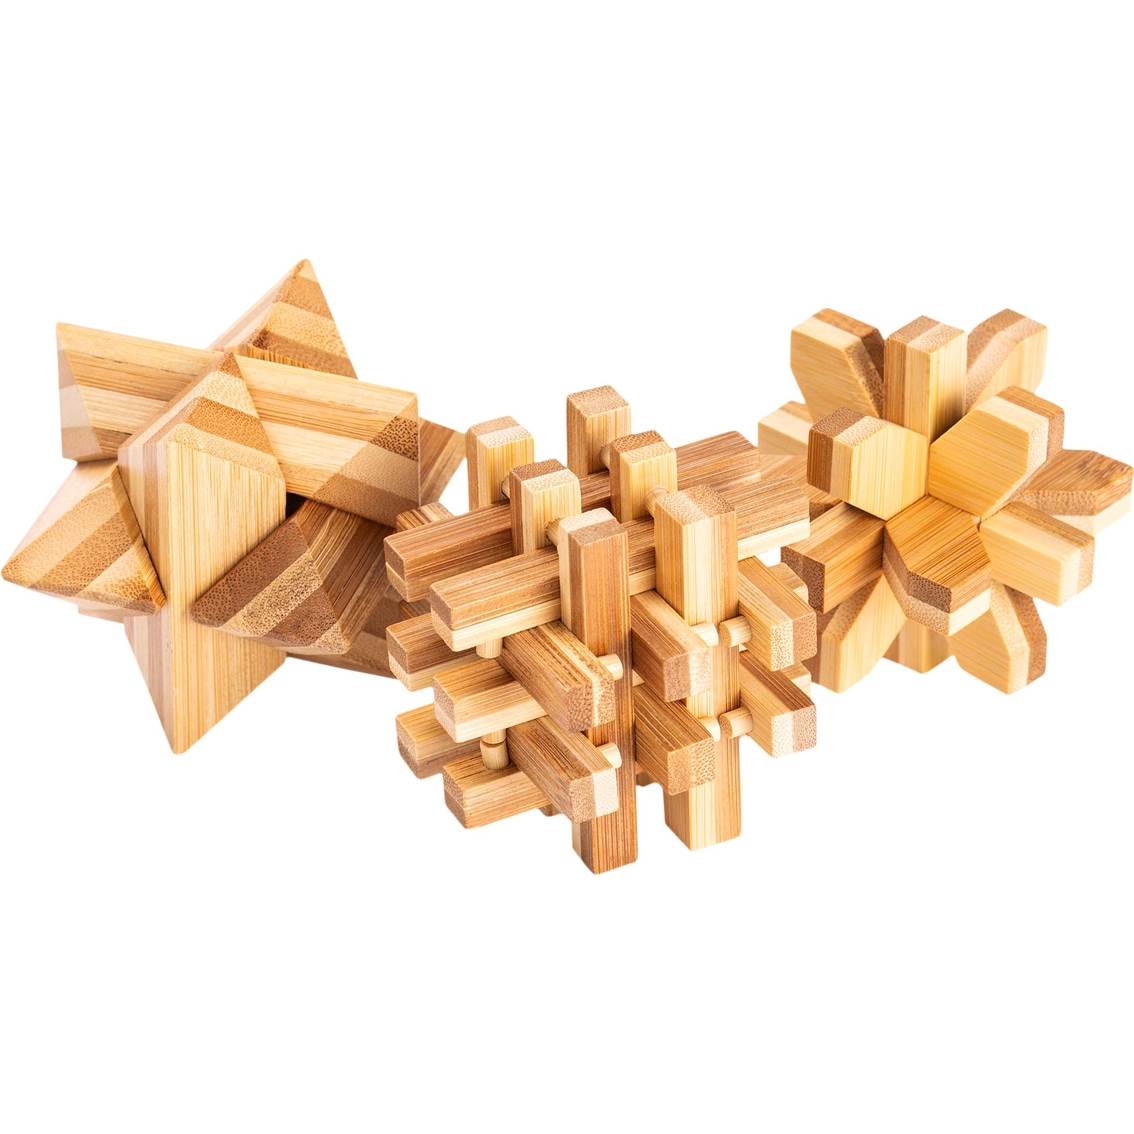 3pk Jumbo Wooden Puzzles | Puzzles | Baby & Toys | Shop ...